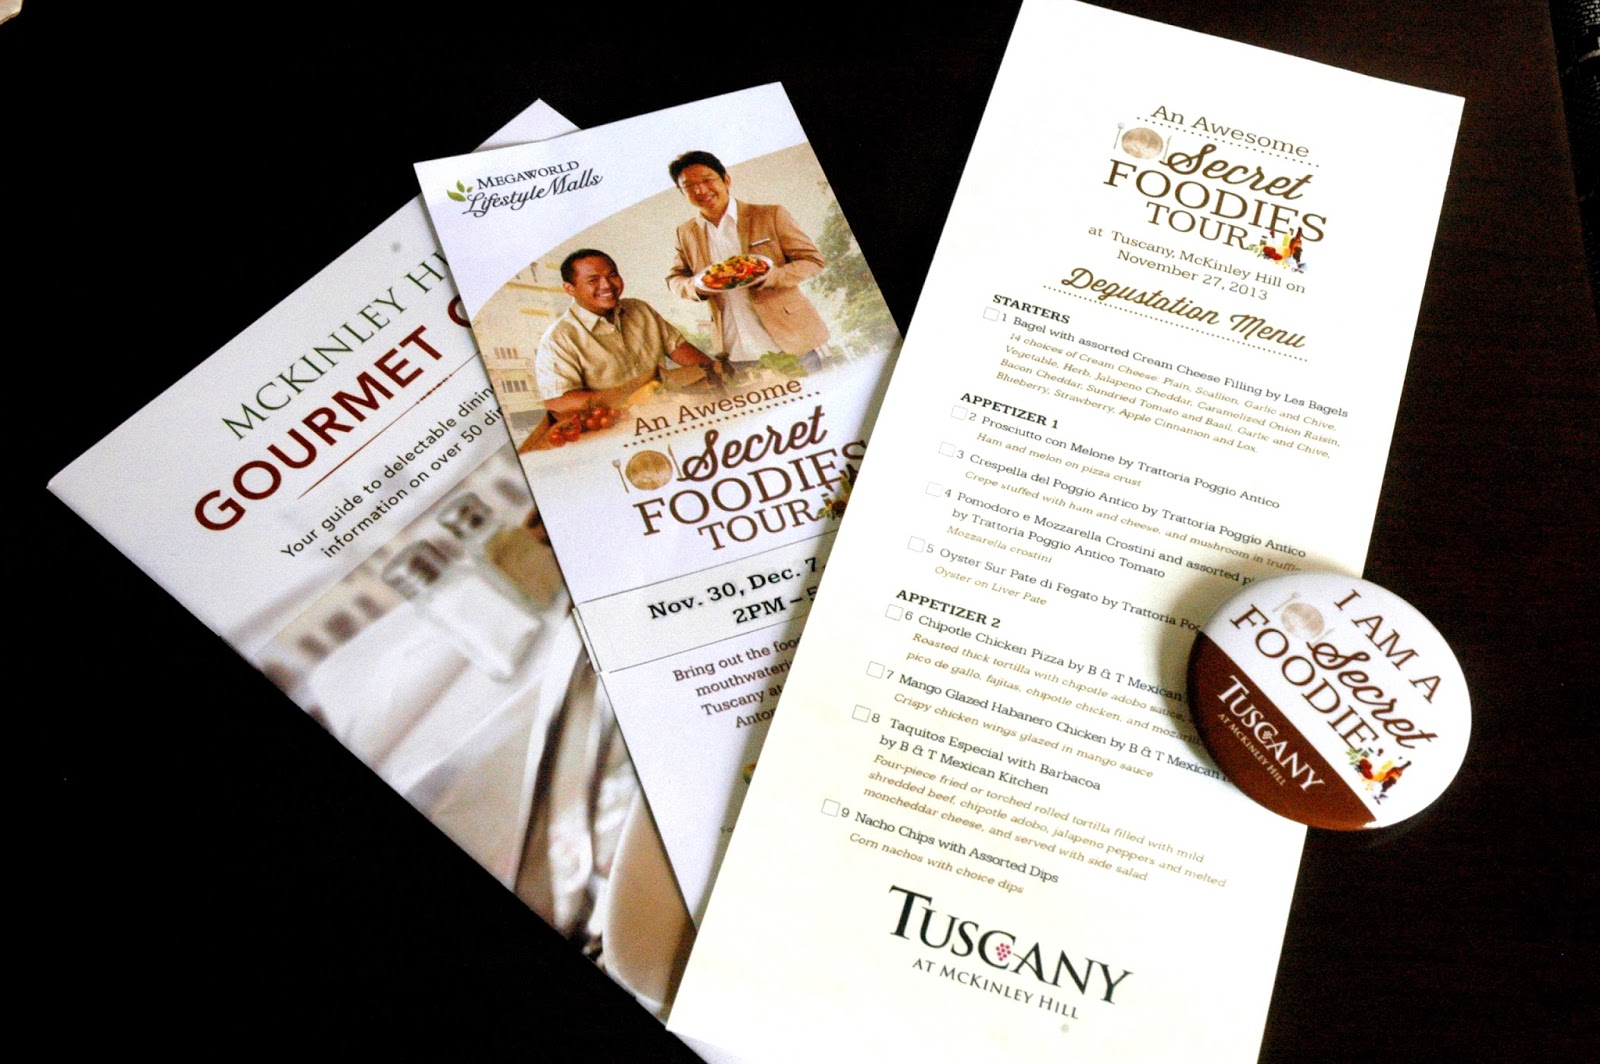 DUDE FOR FOOD: An Awesome Secret Foodies Tour at McKinley Hill\'s Tuscany